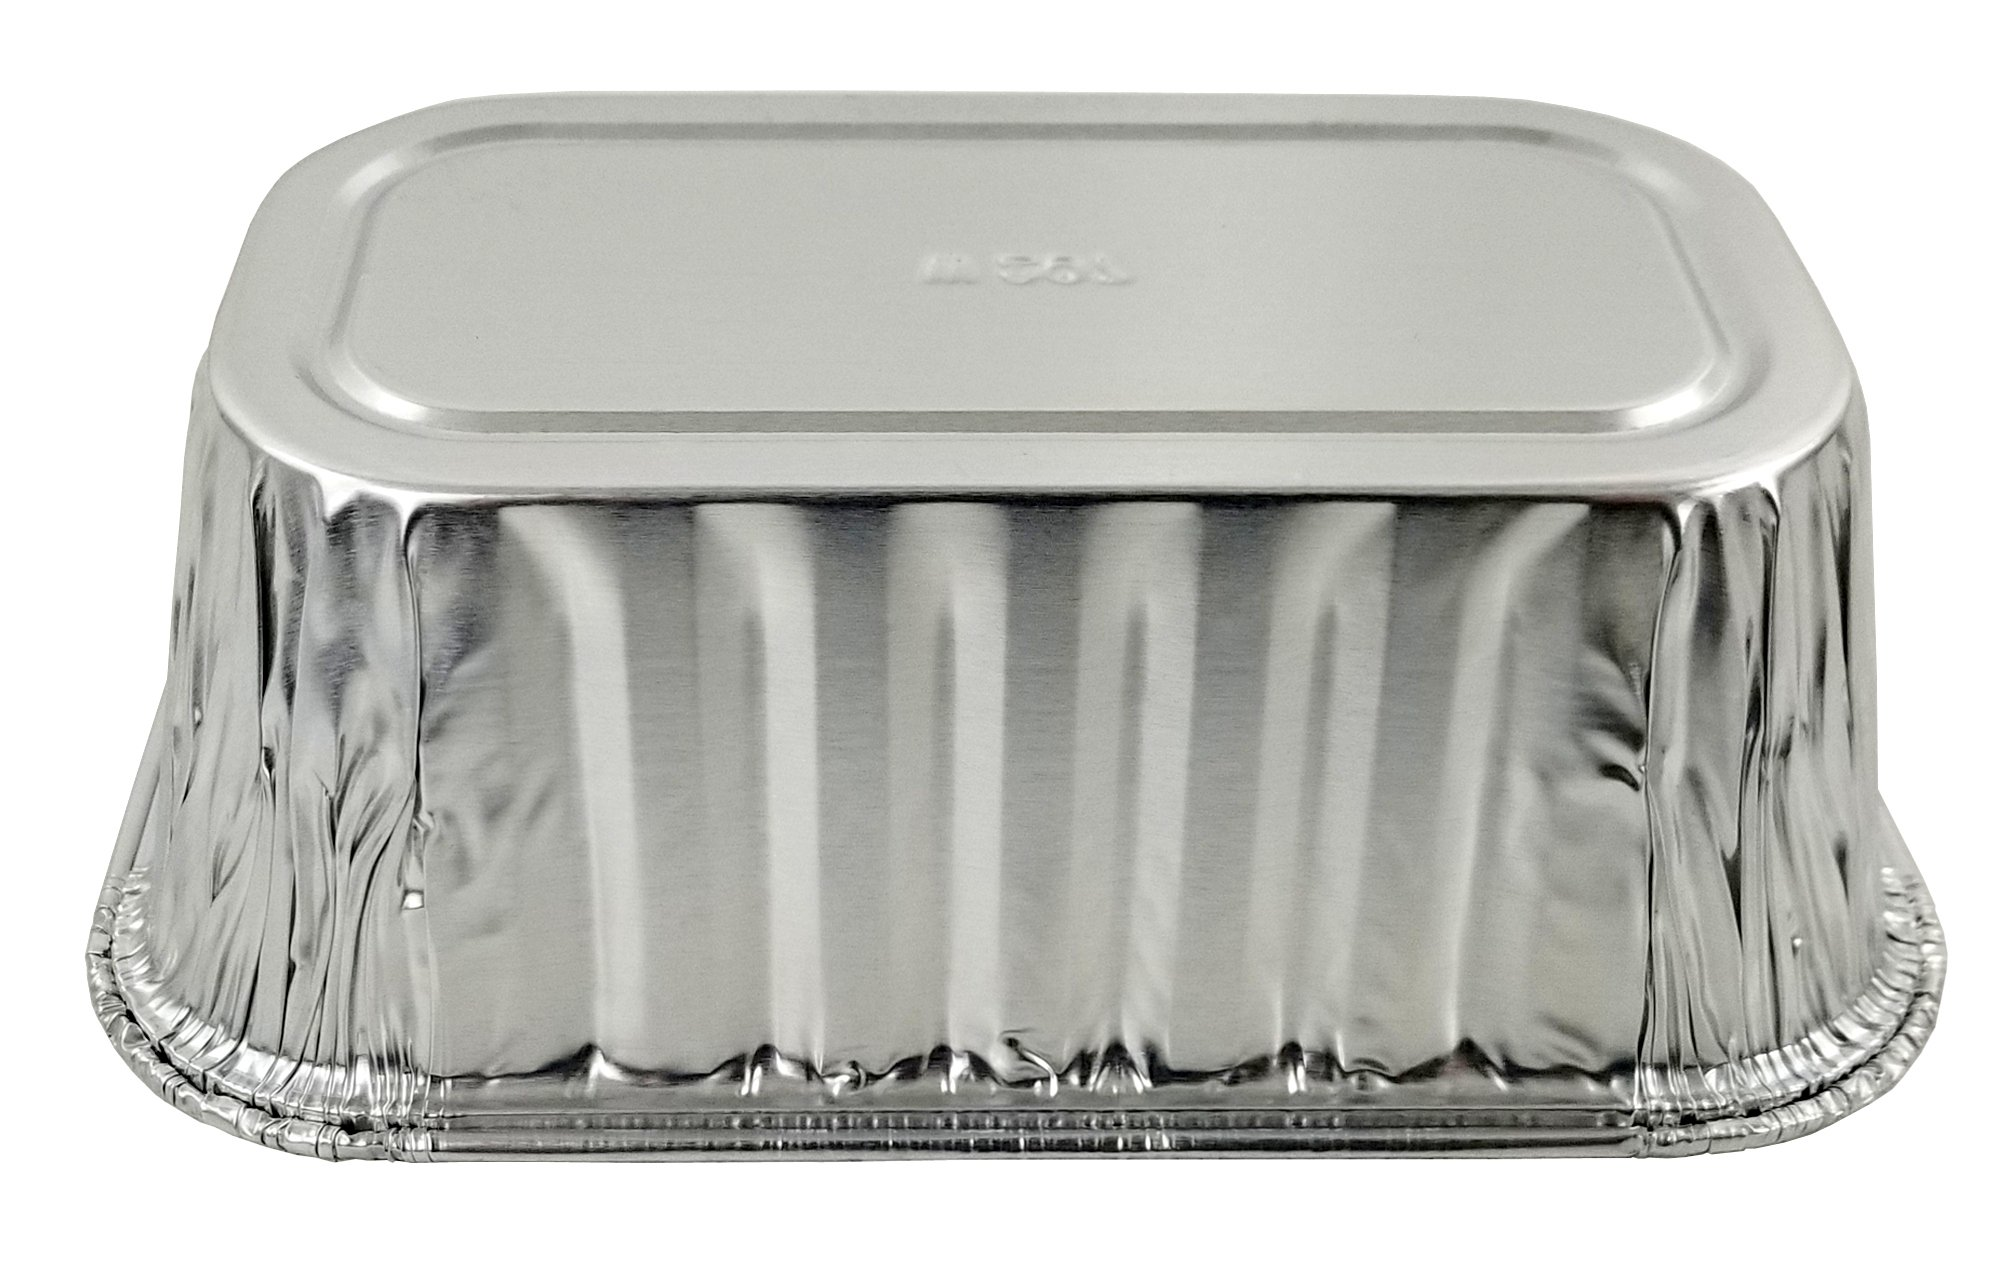 Pactogo Disposable 1 lb. Aluminum Foil Mini Loaf Pans with Clear Dome Lids (Pack of 100 Sets) by PACTOGO (Image #9)